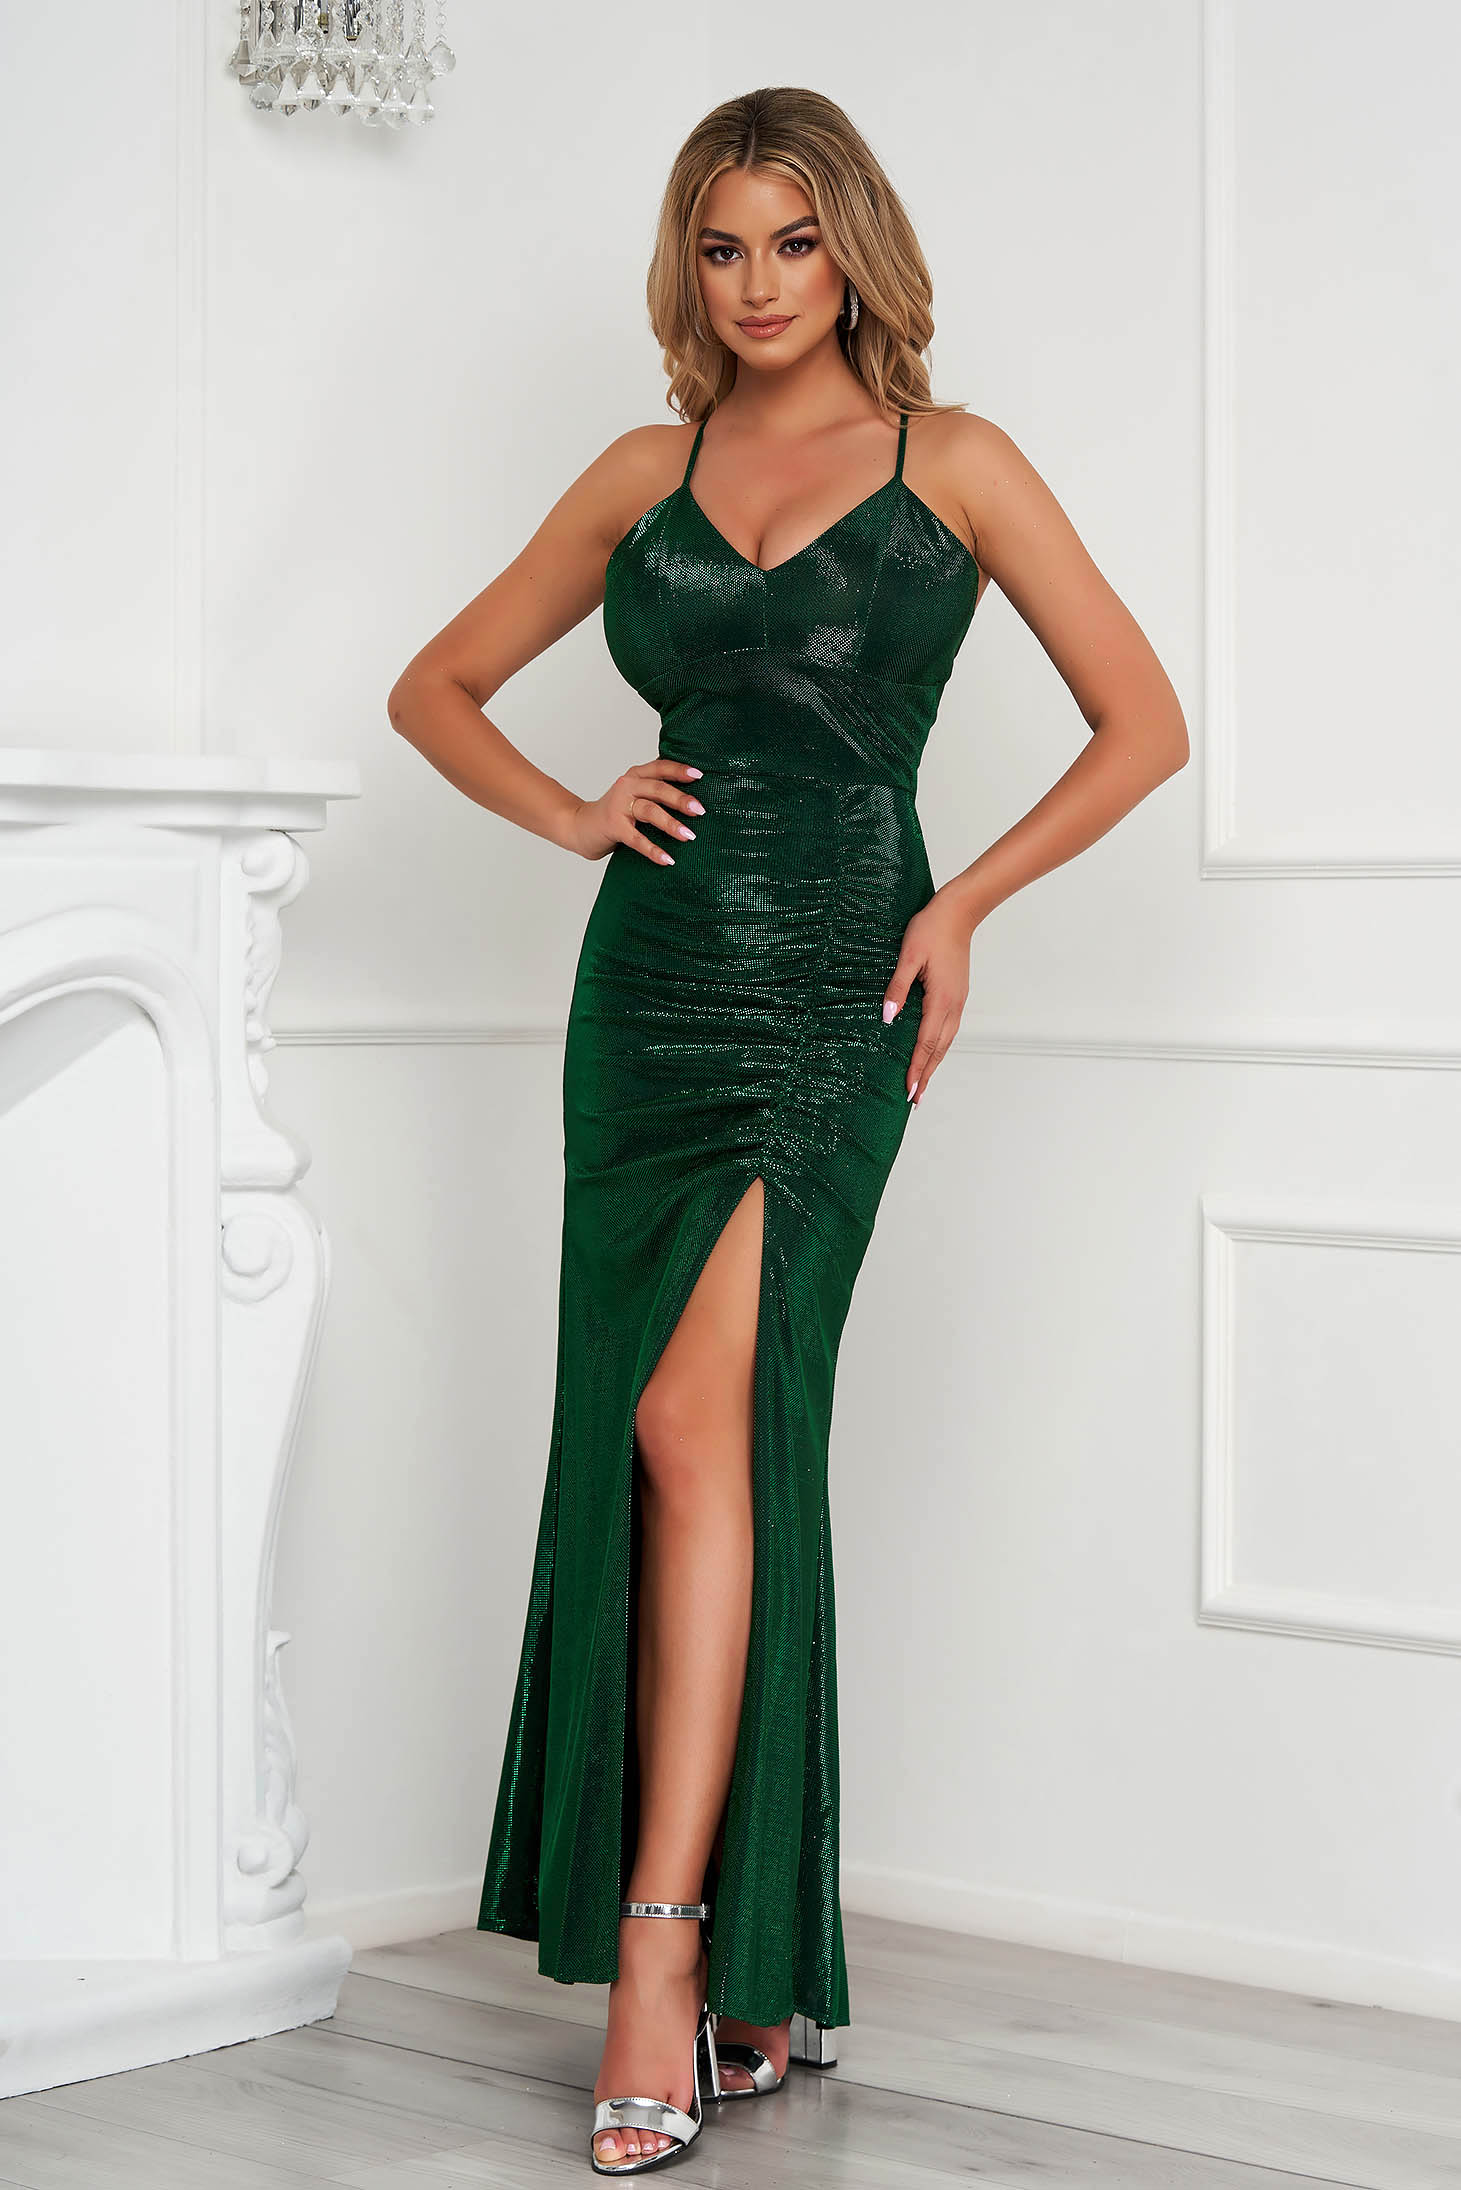 Green dress occasional long pencil with push-up cups with straps